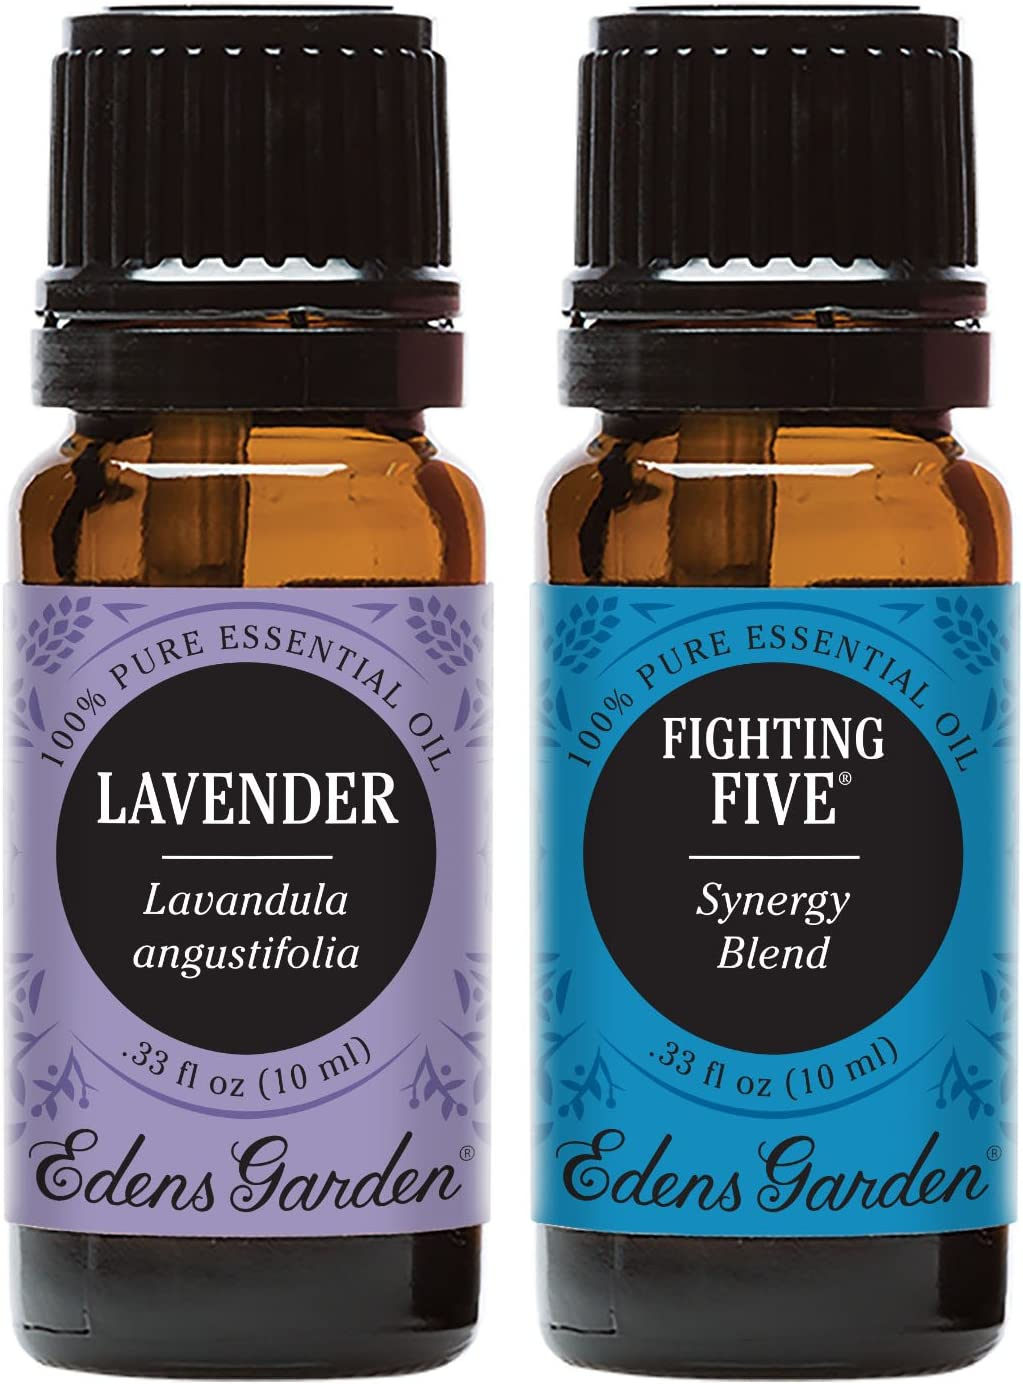 Edens Garden Fighting Five Synergy Blend & Lavender Essential Oil, 100% Pure Therapeutic Grade, 10 ml Value Pack